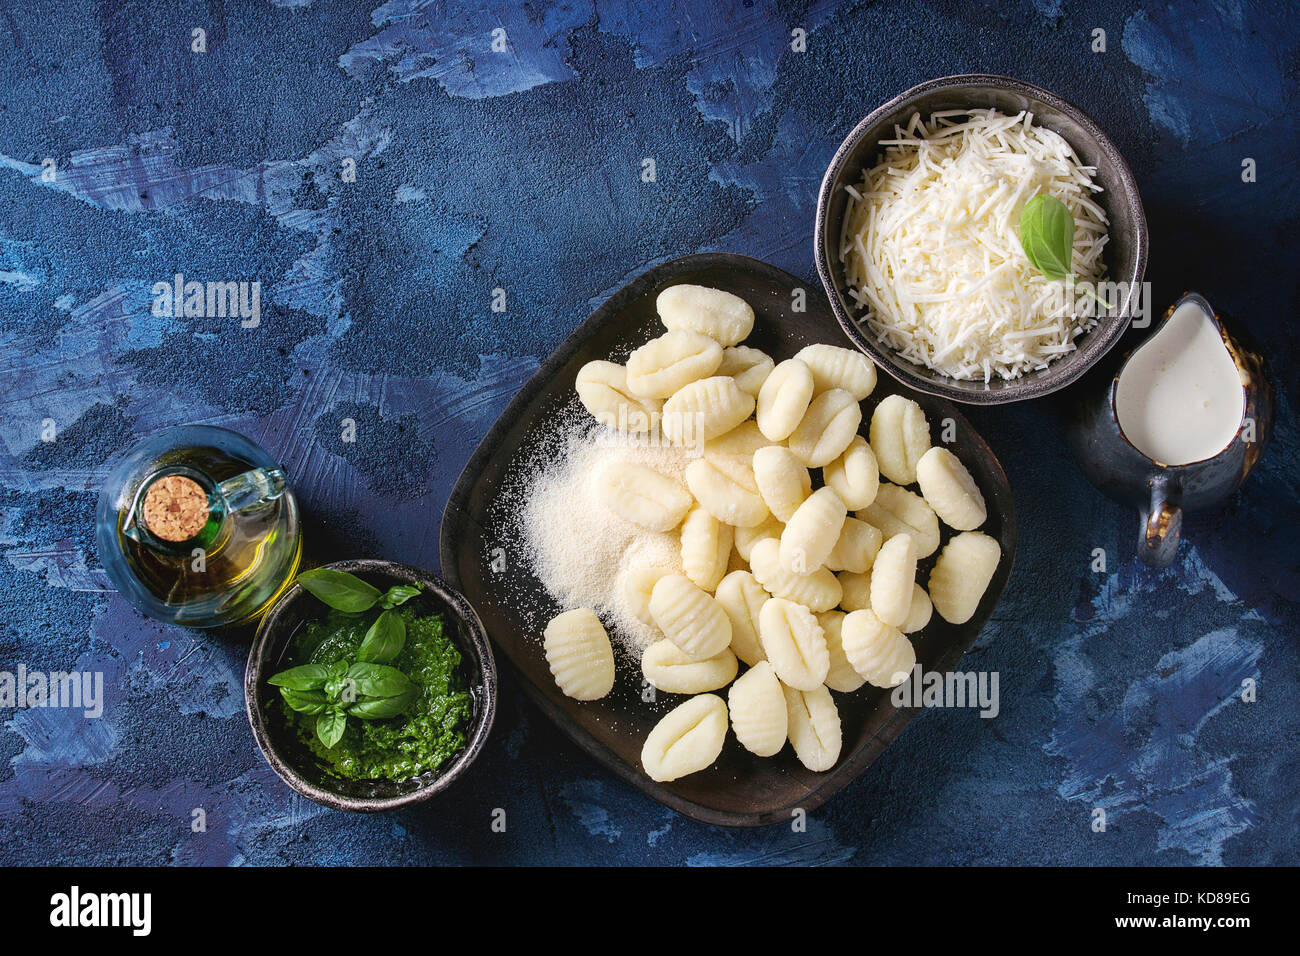 Raw uncooked potato gnocchi in black wooden plates with ingredients. Flour, grated parmesan cheese, pesto sauce, - Stock Image